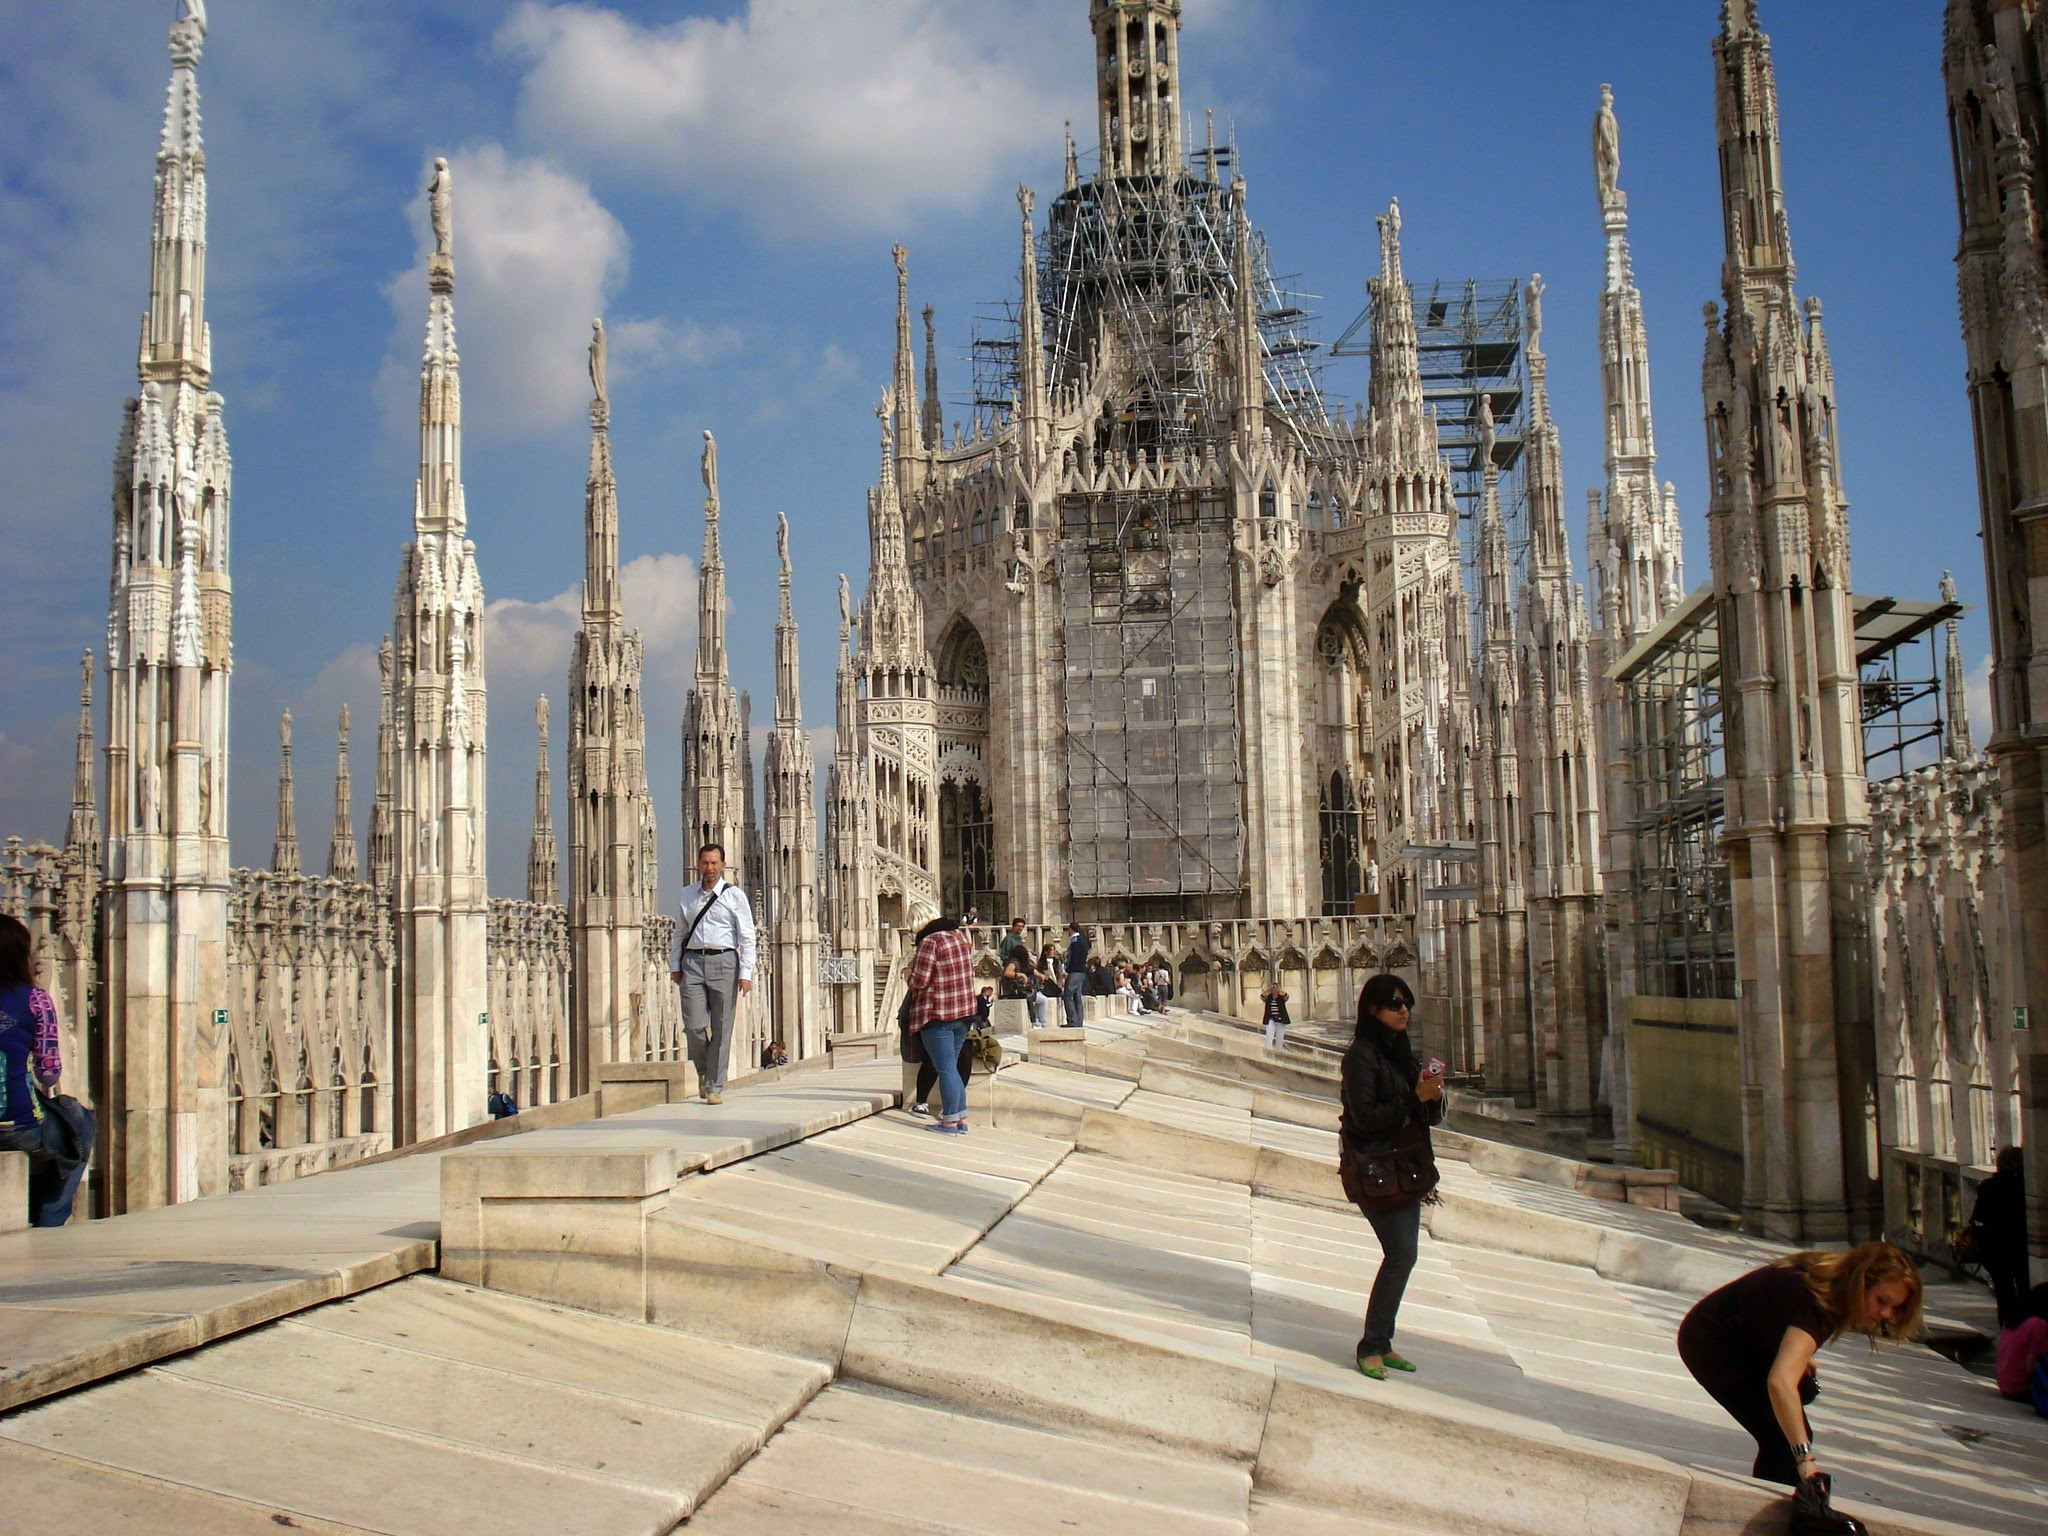 roof of Duomo in Milan, Italy on our 2010 adventure with ouritalianjourney.com